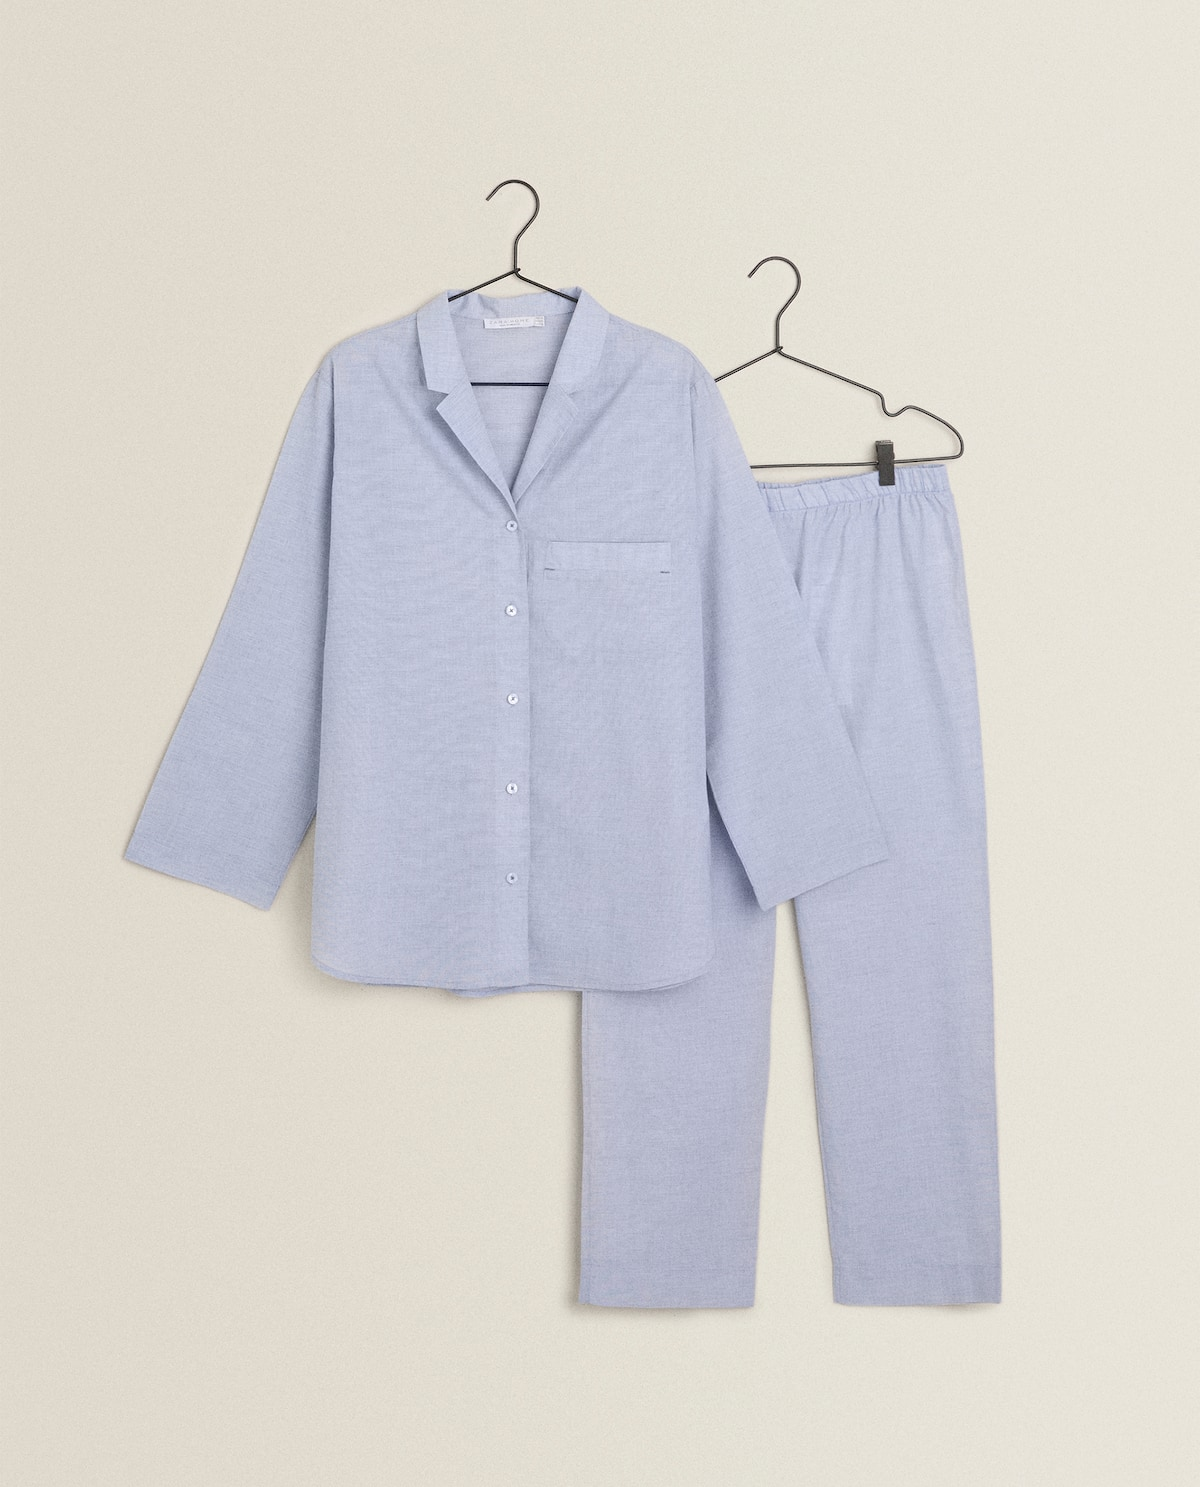 Plain Pyjamas With Buttons  Woman   Clothing   Loungewear   Bedroom by Zara Home